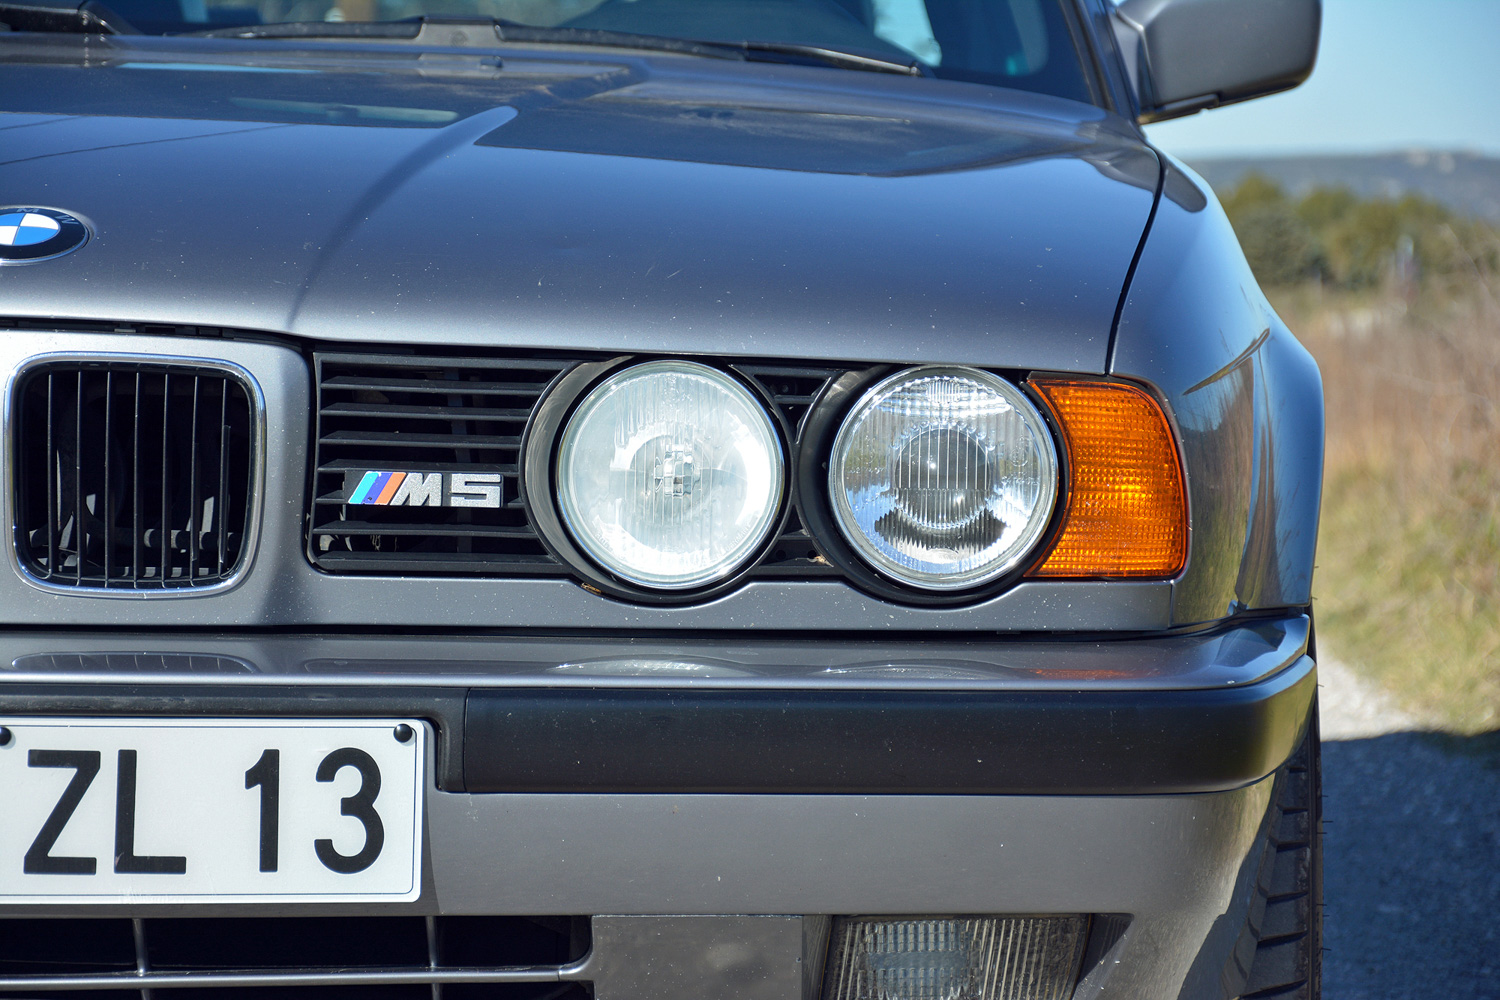 BMW M5 (E34) grille badge detail